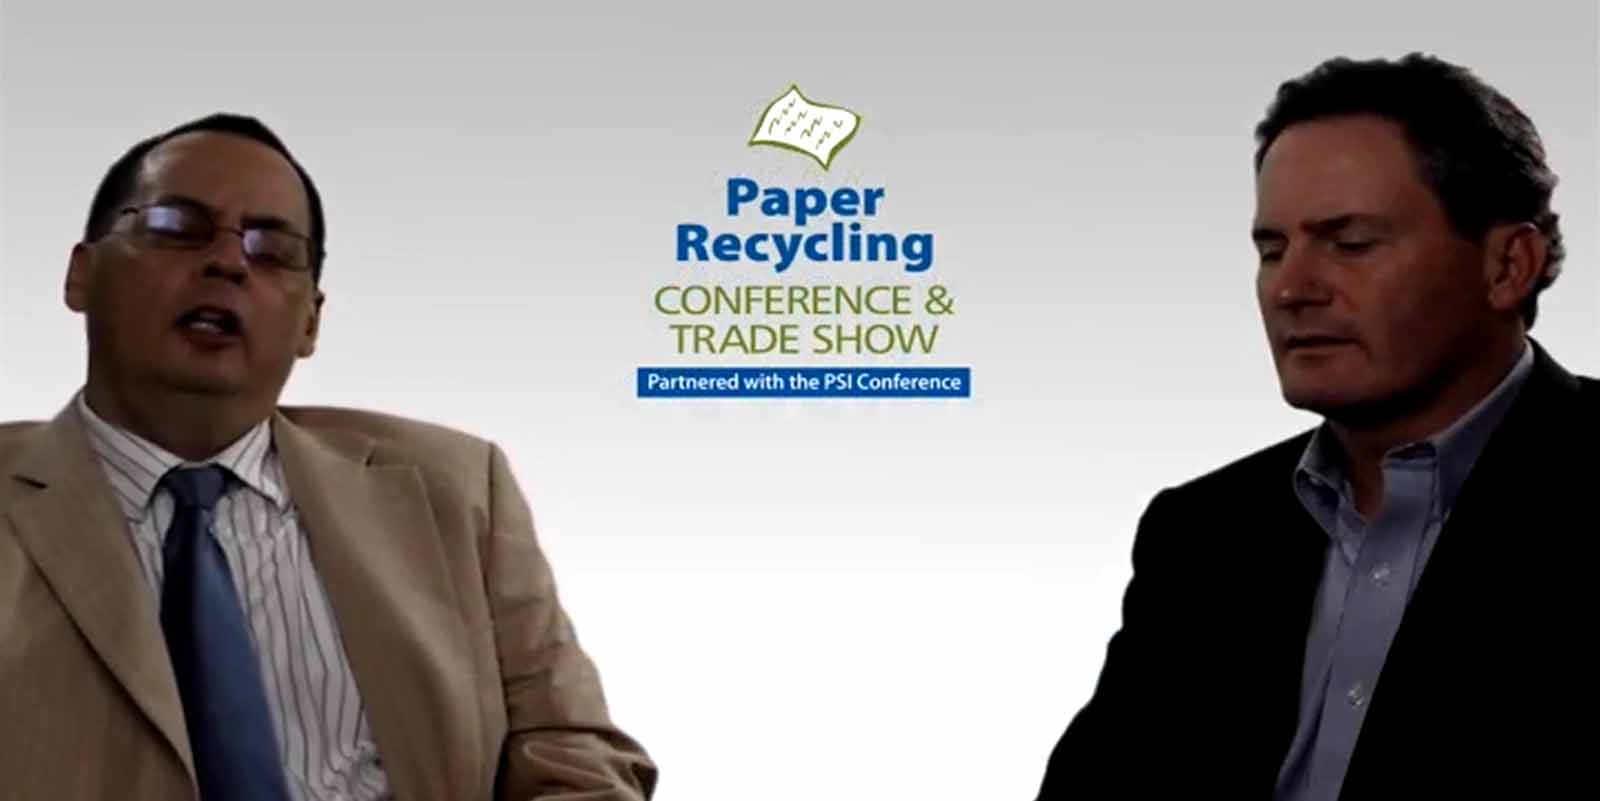 Paper Recycling Conference Interview: Sean Duffy - Image